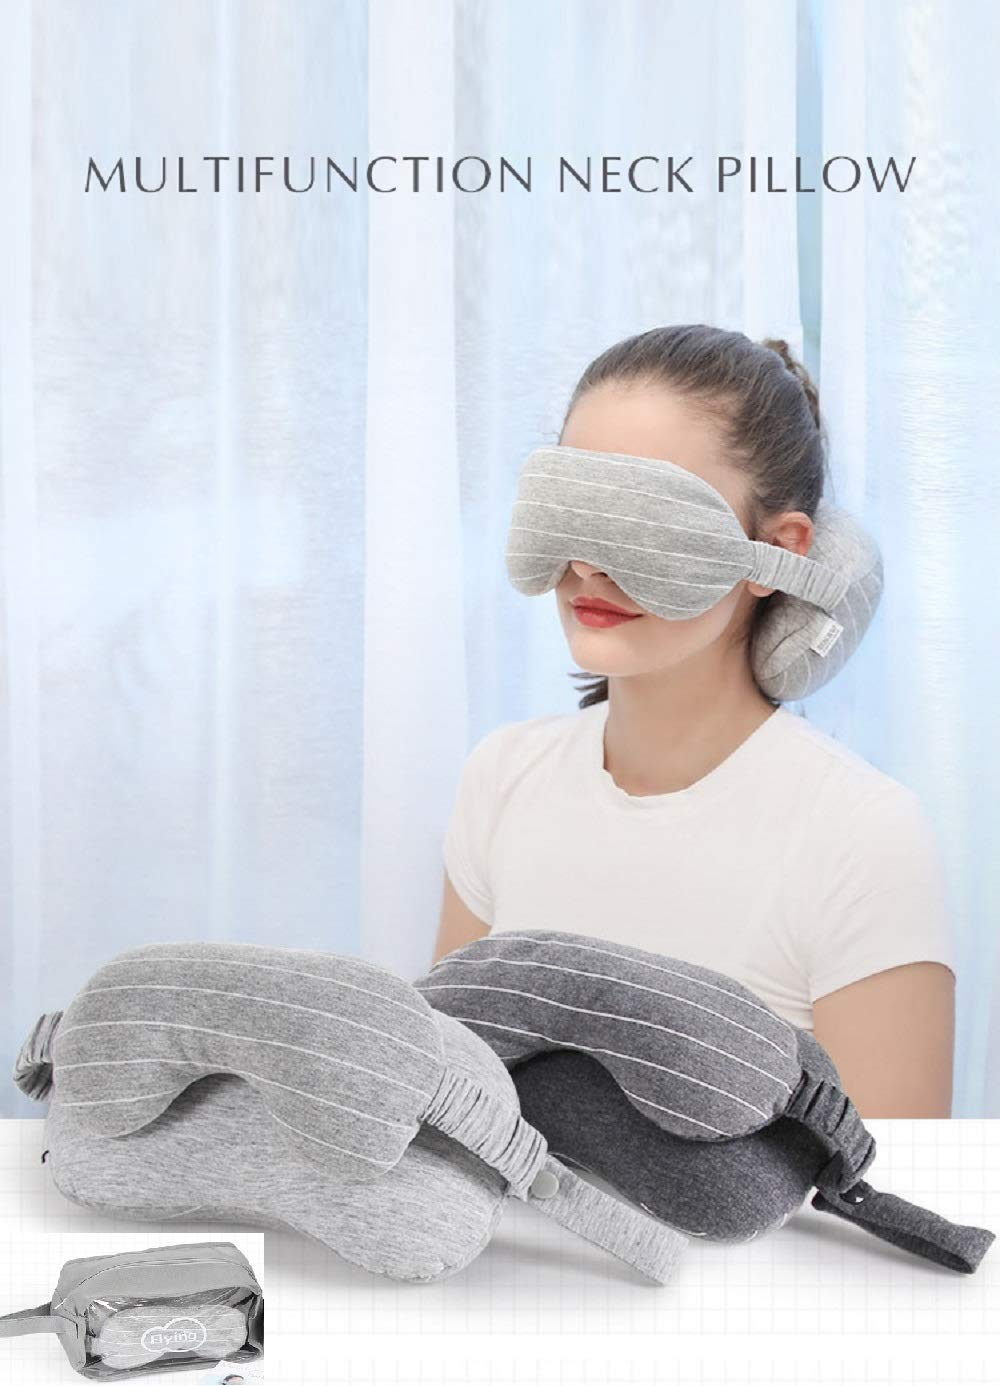 Okayland Multi Function Travel Eye Pillow Flight Car Office Travel Nap Neck Head Support Eye Mask Pillow,A Patented Product (Dark Gray)